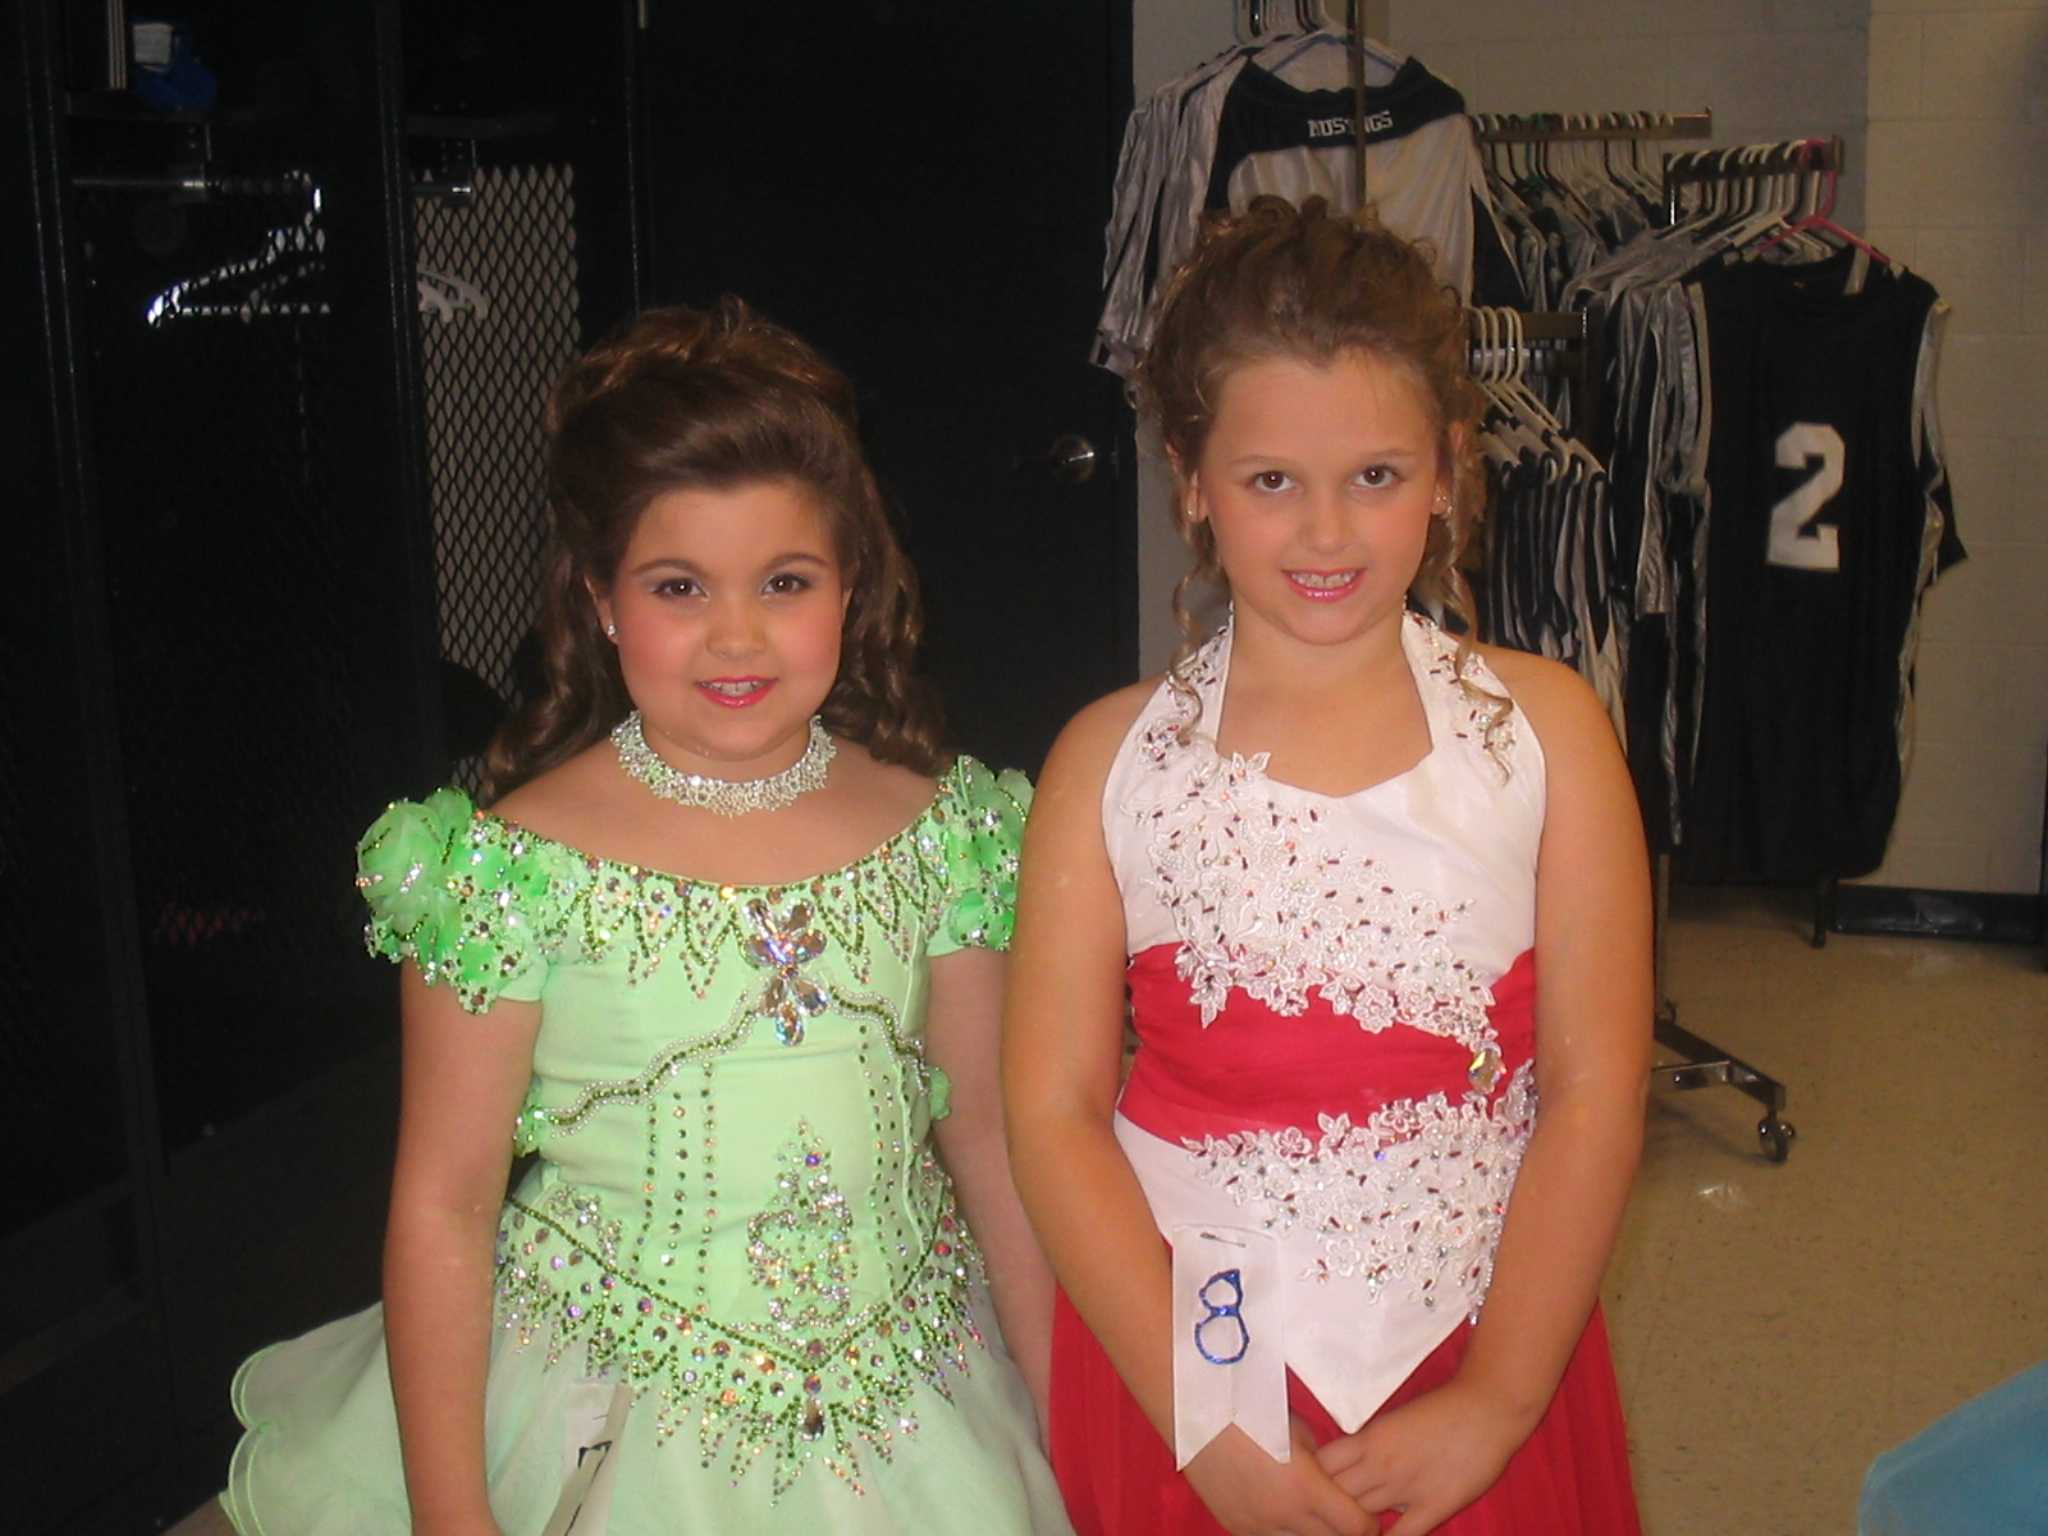 Hannah Harrell and Ashley Field were young pageant contestants in 2006.